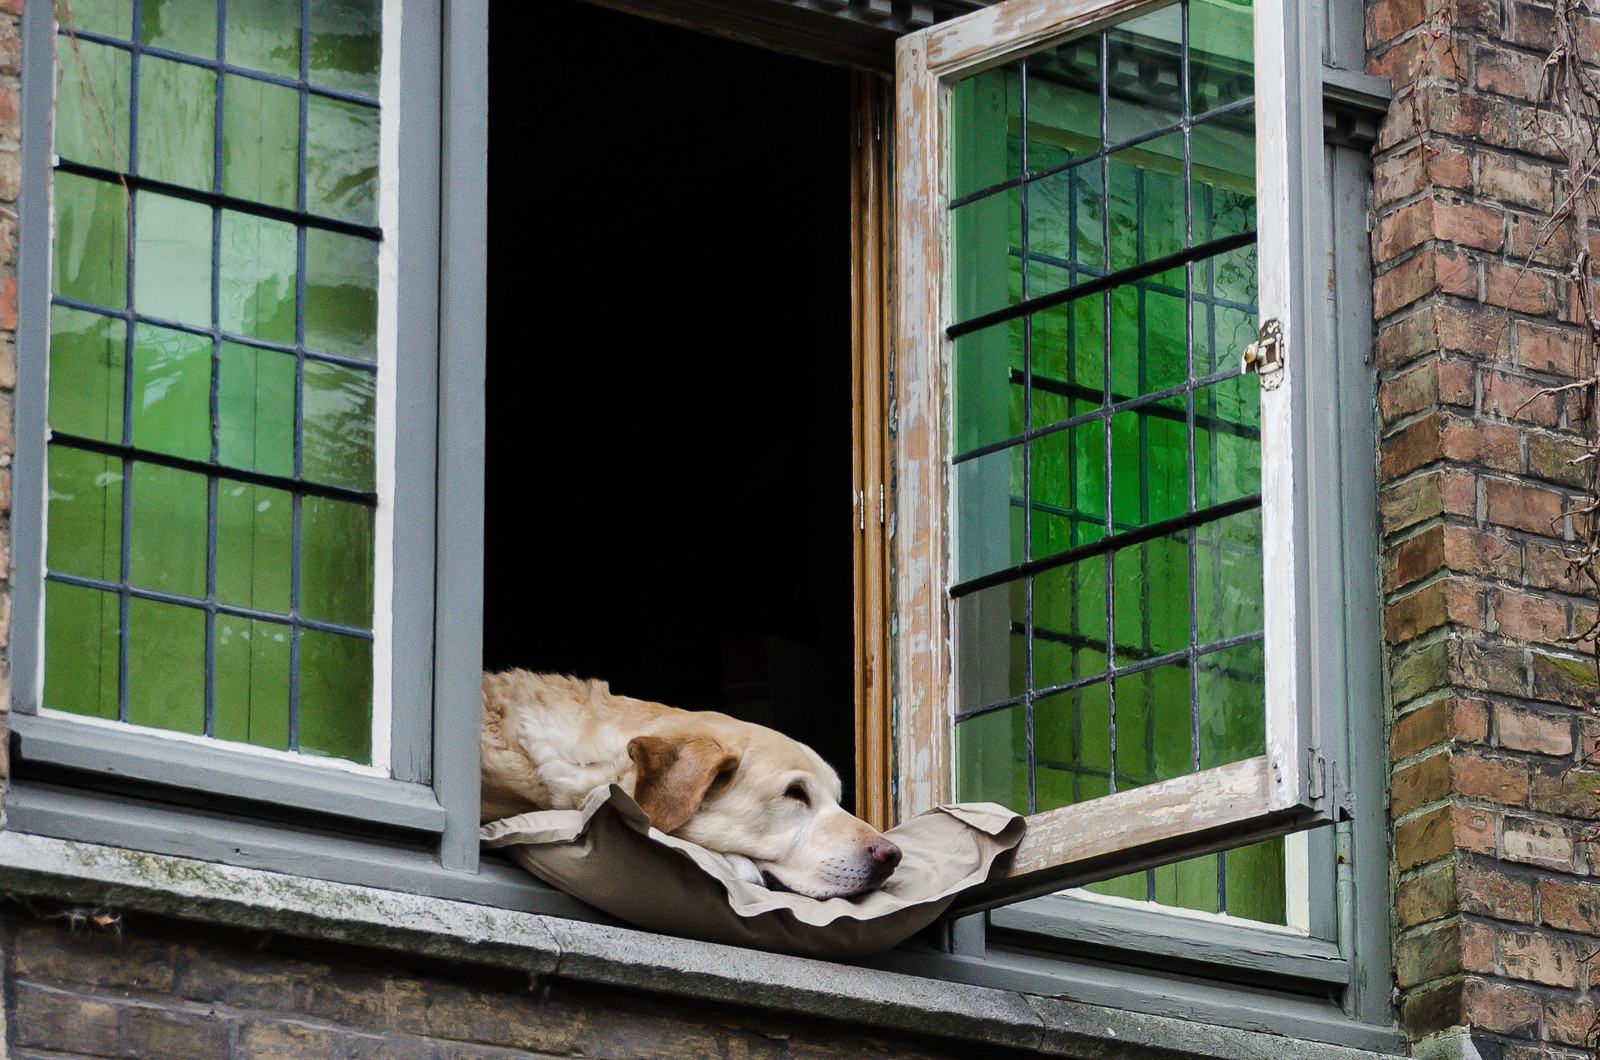 Fidel, Most Photographed Dog in Brugges.